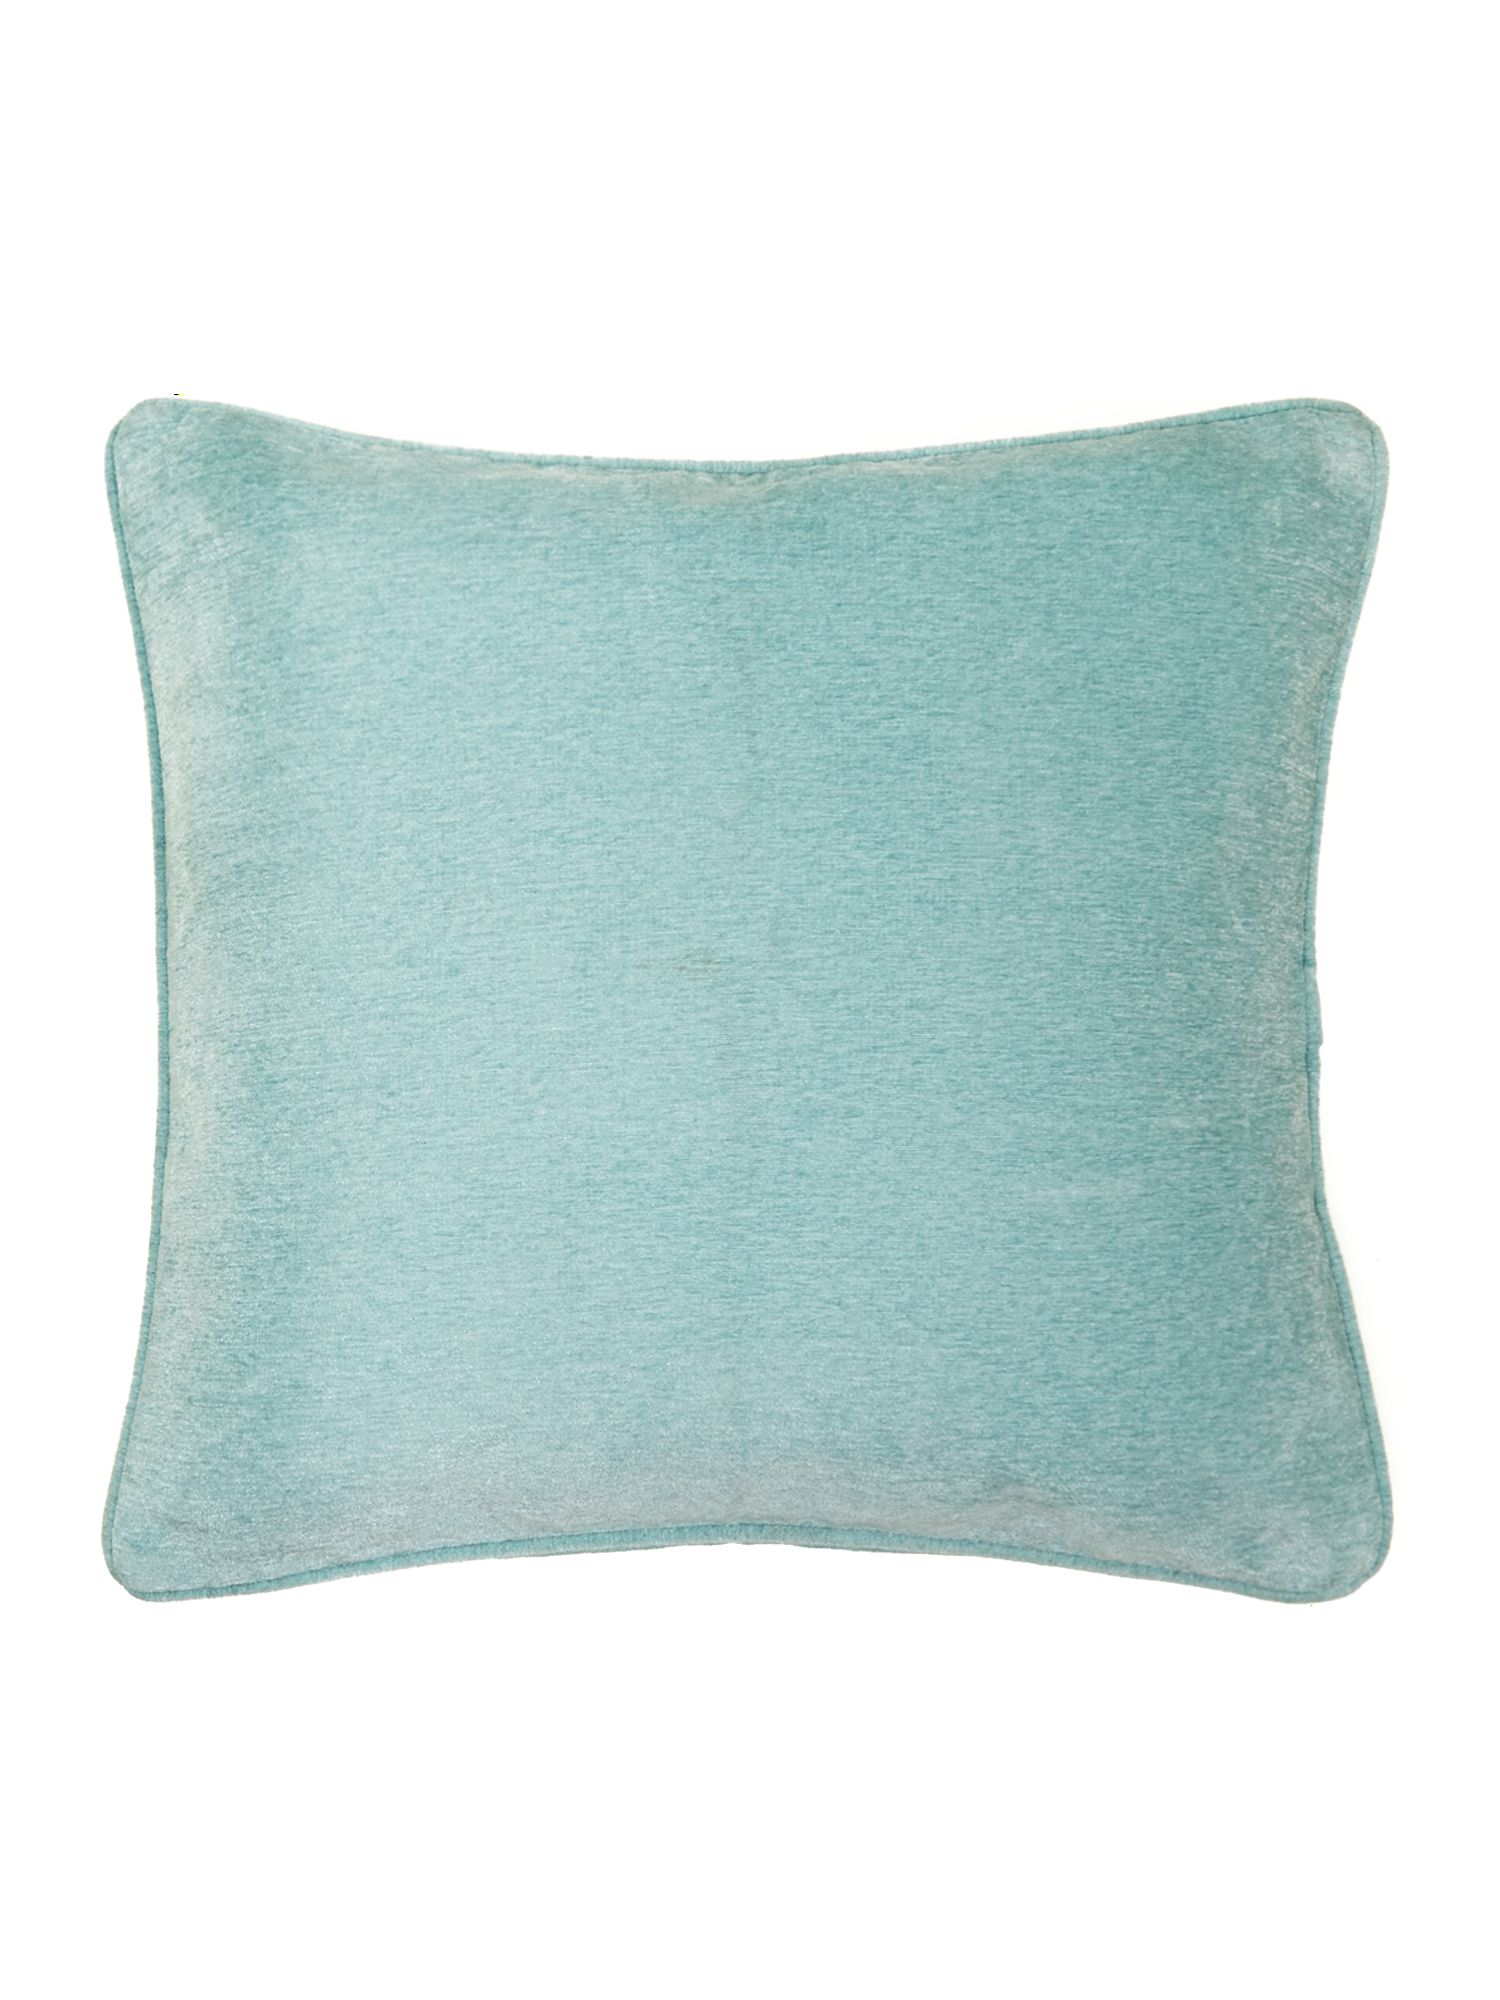 Duck egg plain chenille cushion